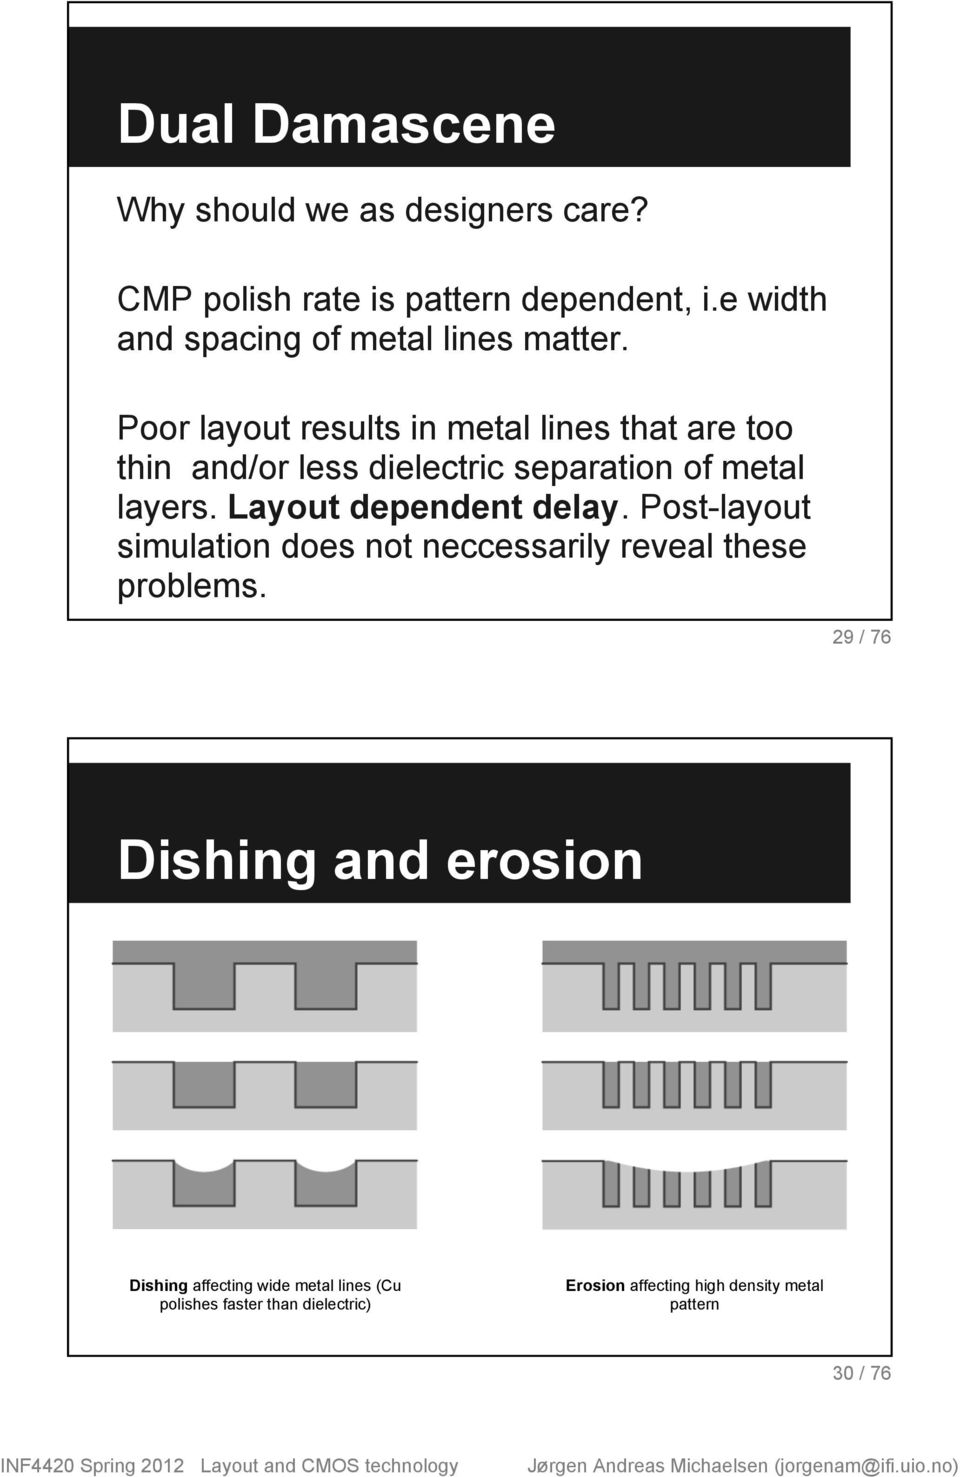 Poor layout results in metal lines that are too thin and/or less dielectric separation of metal layers.